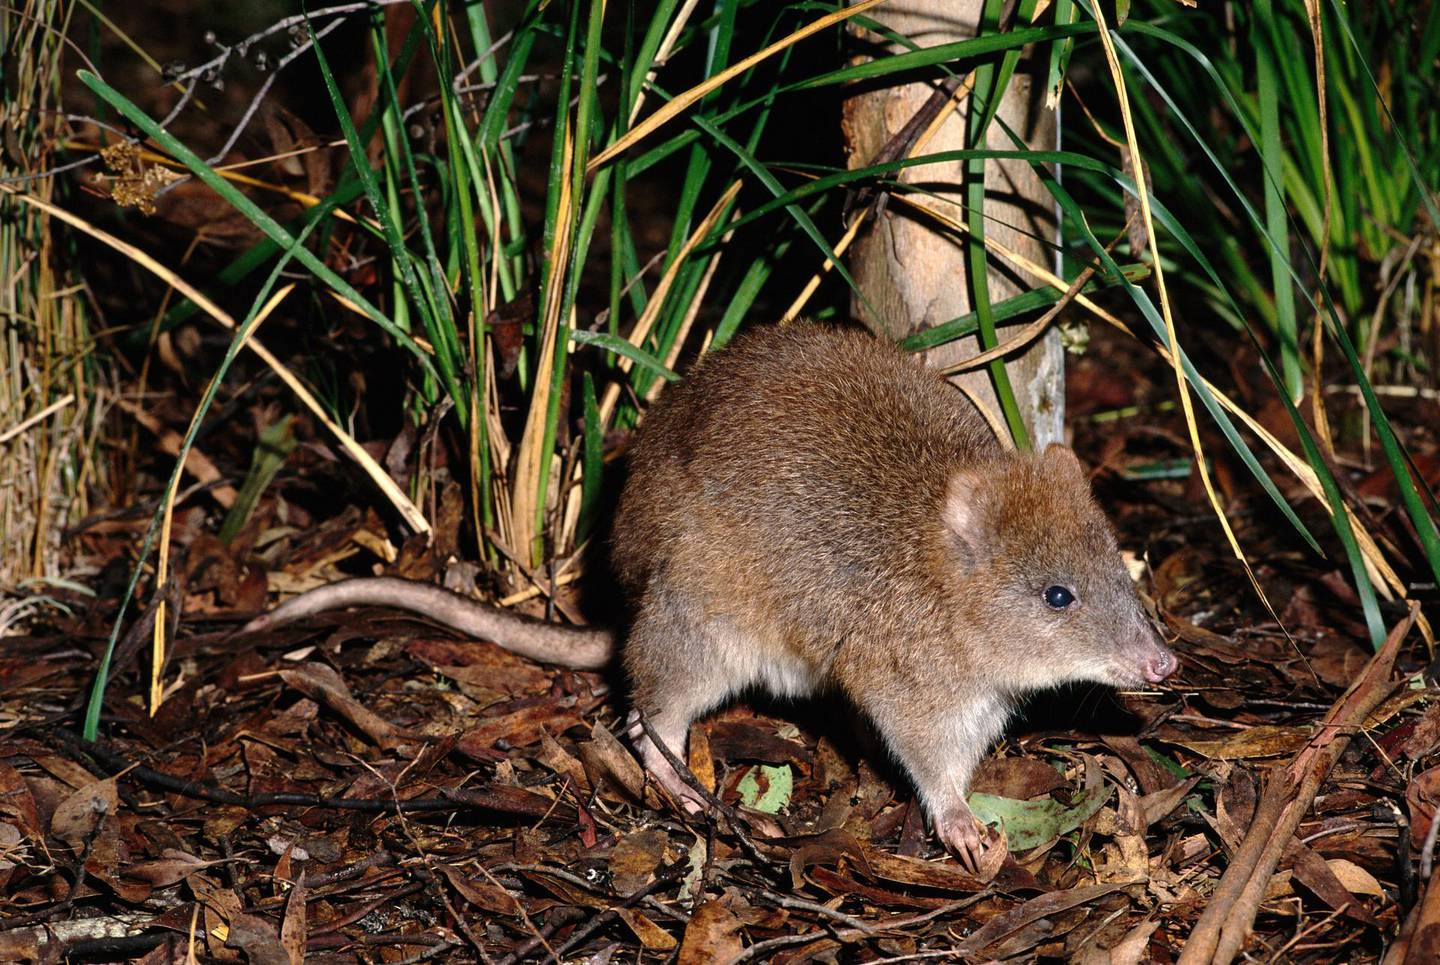 A0AP2B LONG FOOTED POTOROO Potorous longipes. Adult eastern Victoria Australia Endangered species. Image shot 1997. Exact date unknown.